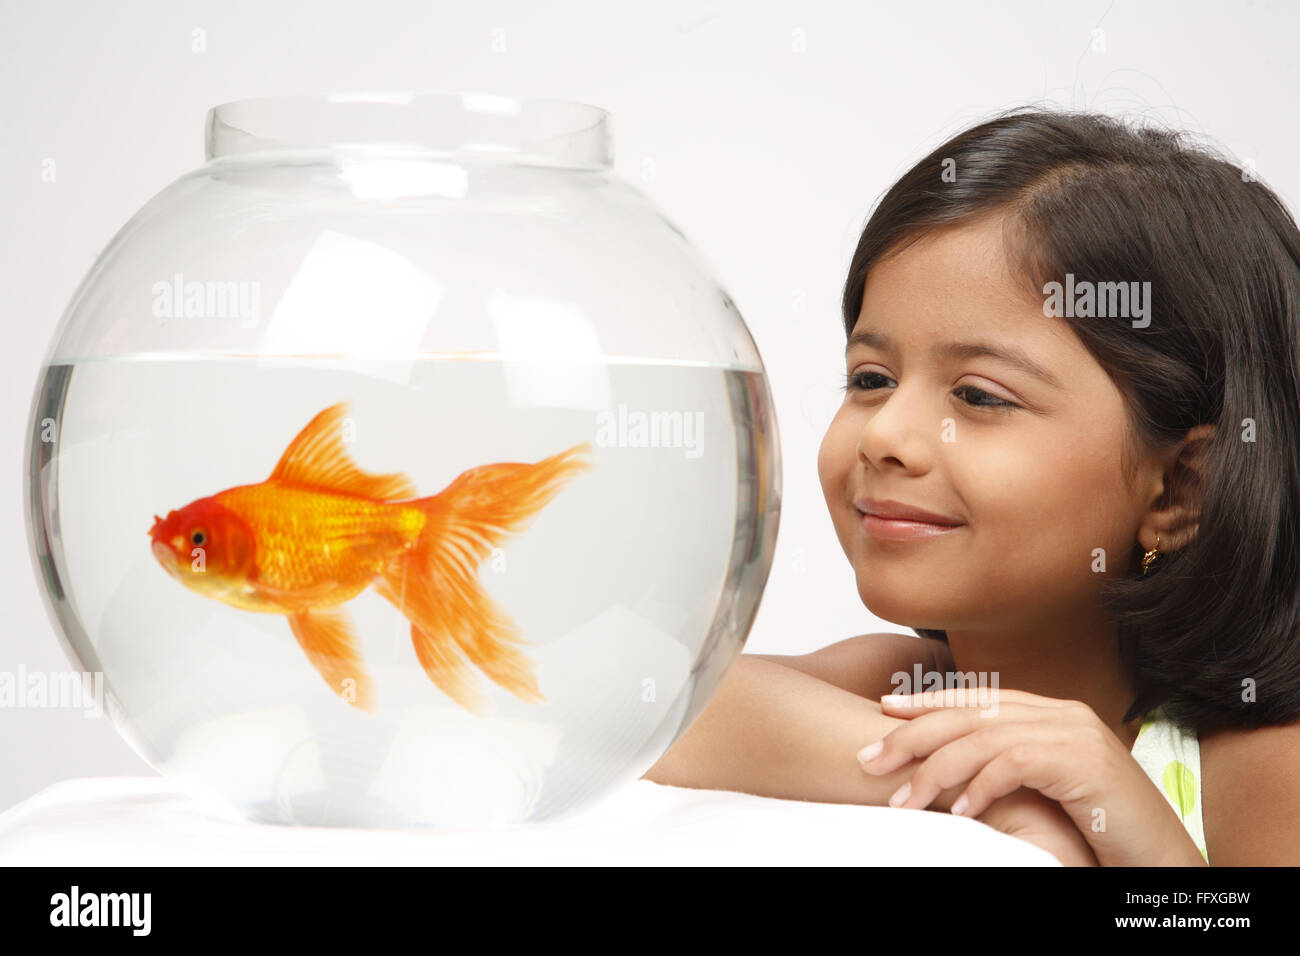 Fish In Girl